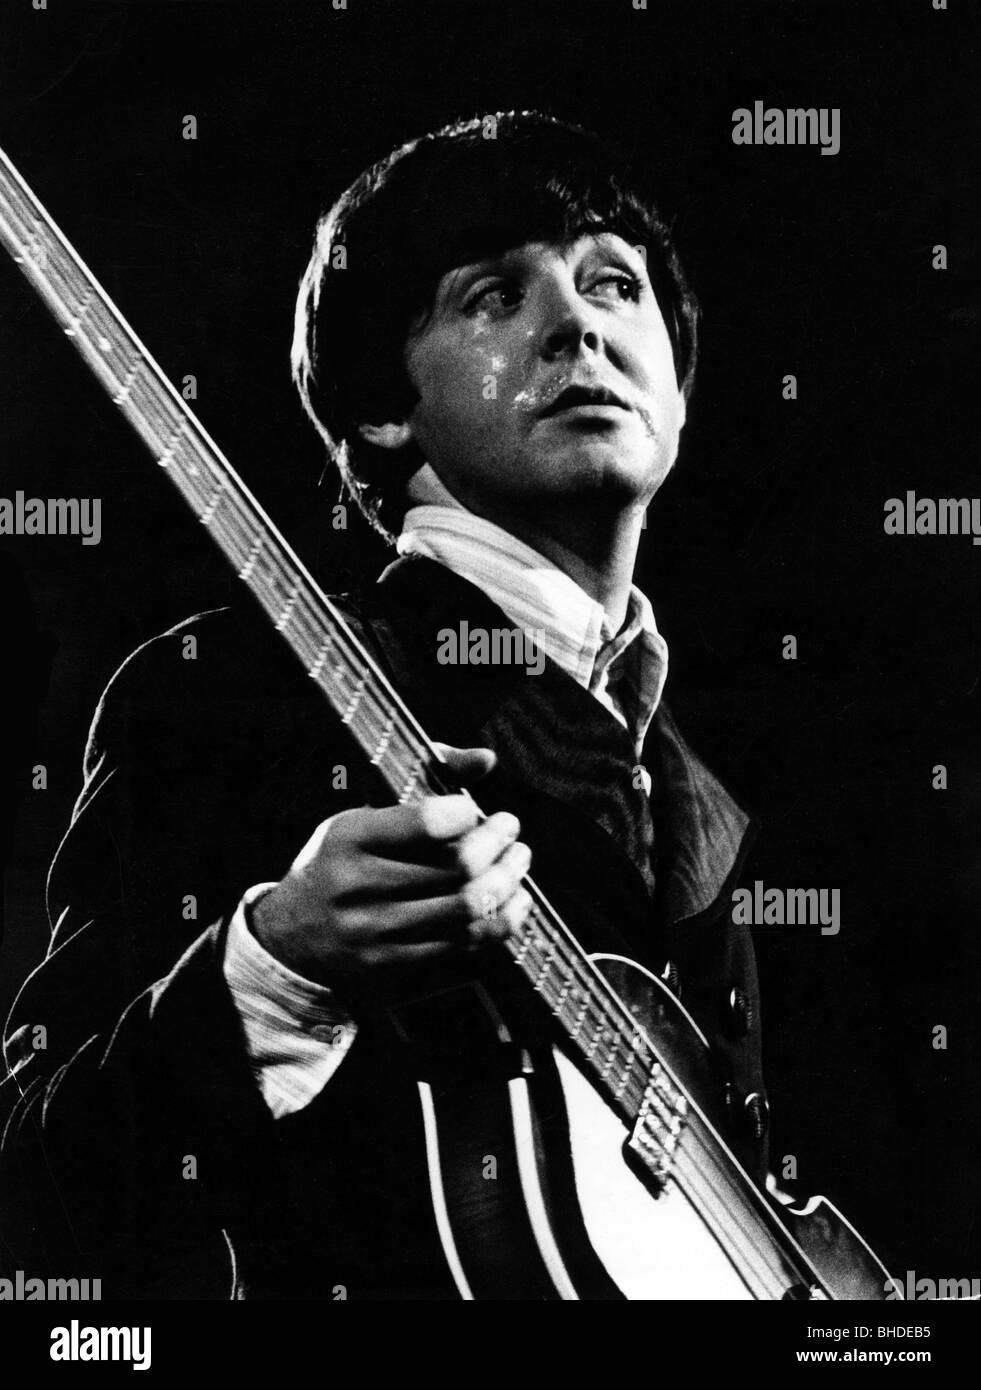 McCartney, Paul, * 18.6.1942, British singer and musician, (The Beatles), half length, singing, in concert, 1966, - Stock Image